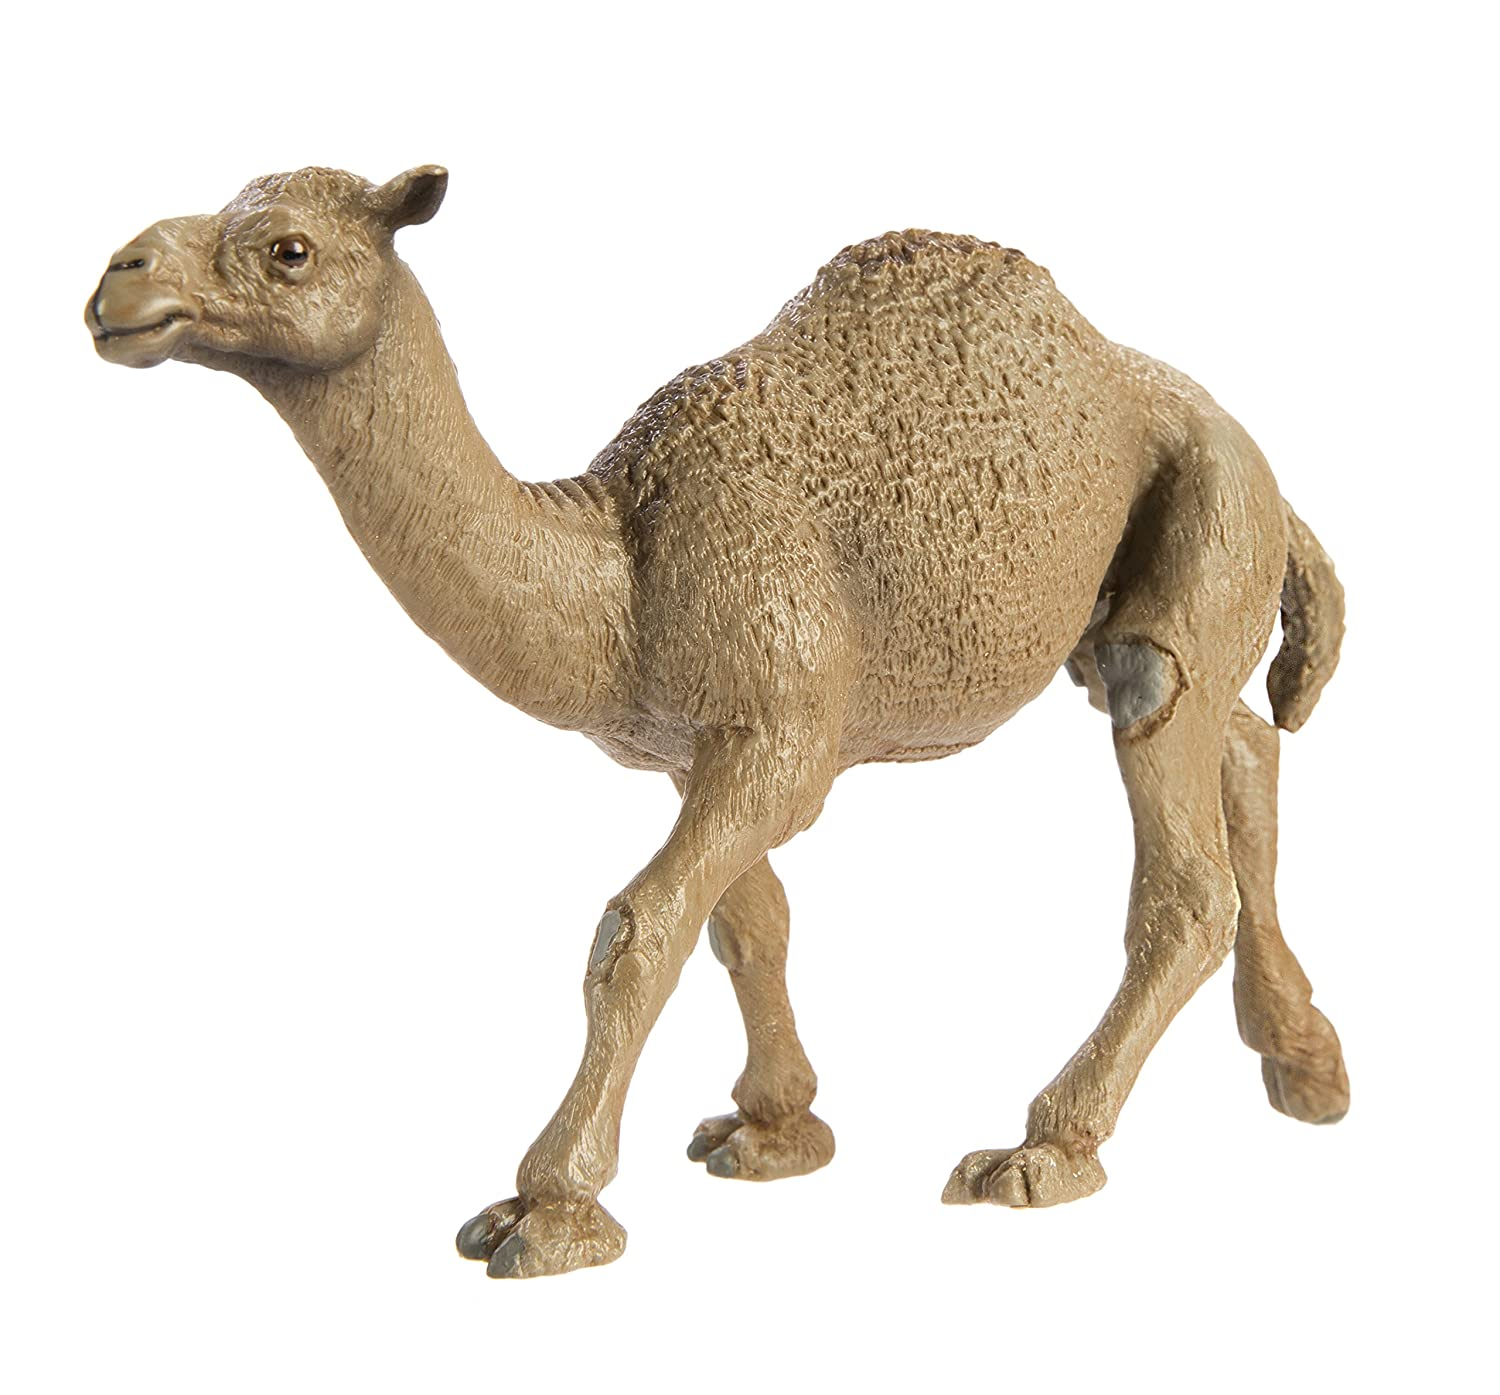 Amazon.com: Safari Ltd Wild Safari Wildlife Dromedary Camel: Toys ...